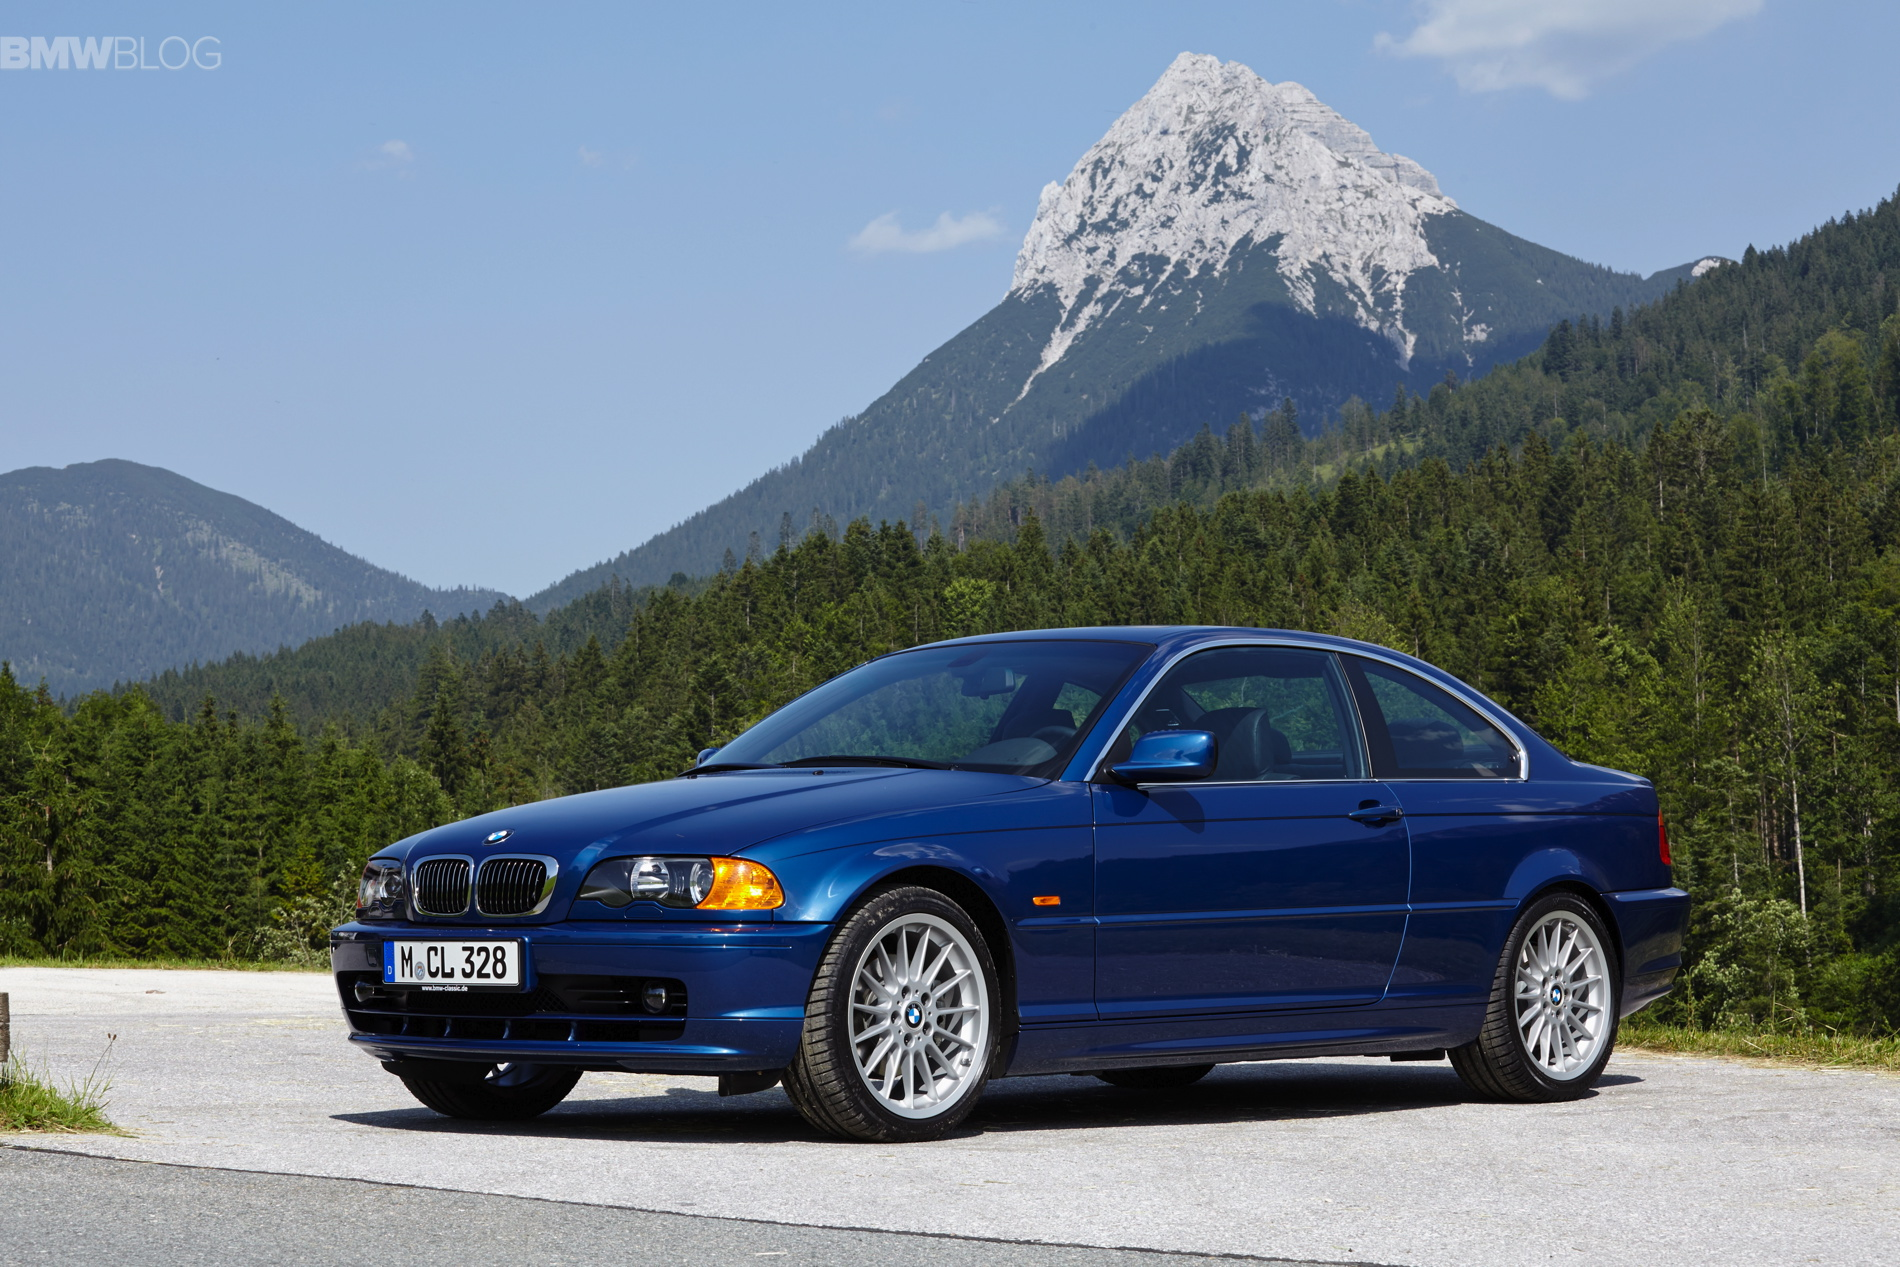 Takata saga: BMW Australia issues safety warning for E46 3 Series owners